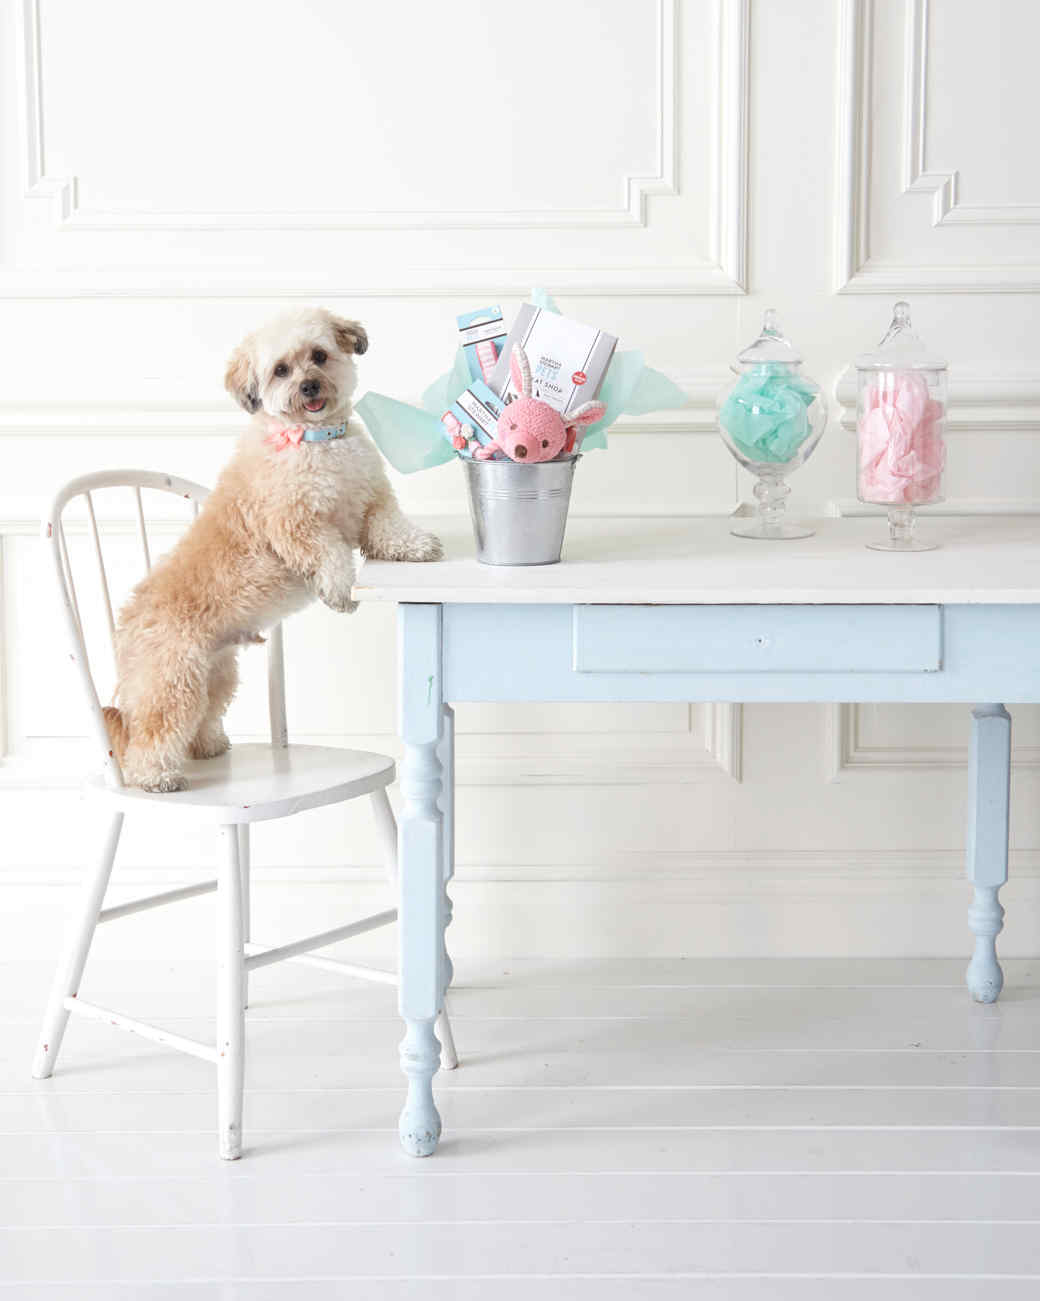 Go Fetch! Host an Easter Egg Hunt for Your Dogs